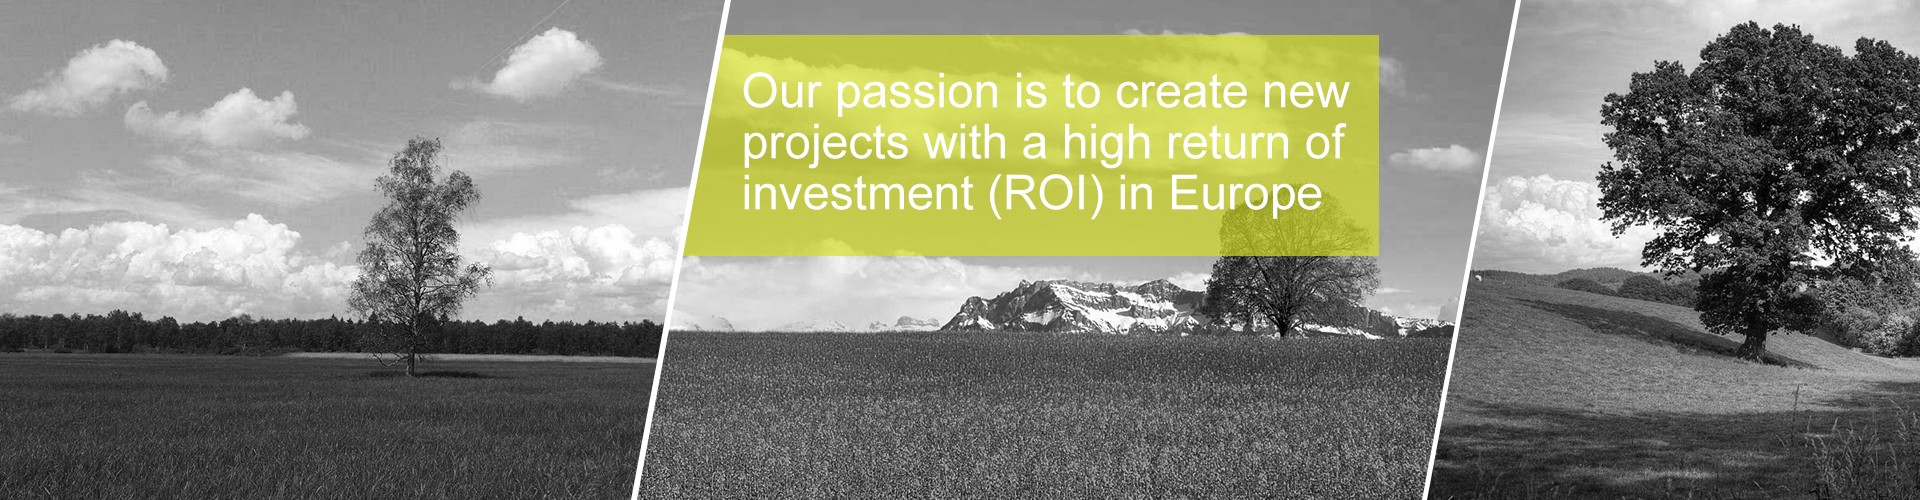 Our passion is to create new projects with a high return of investmen (ROI) in Europe